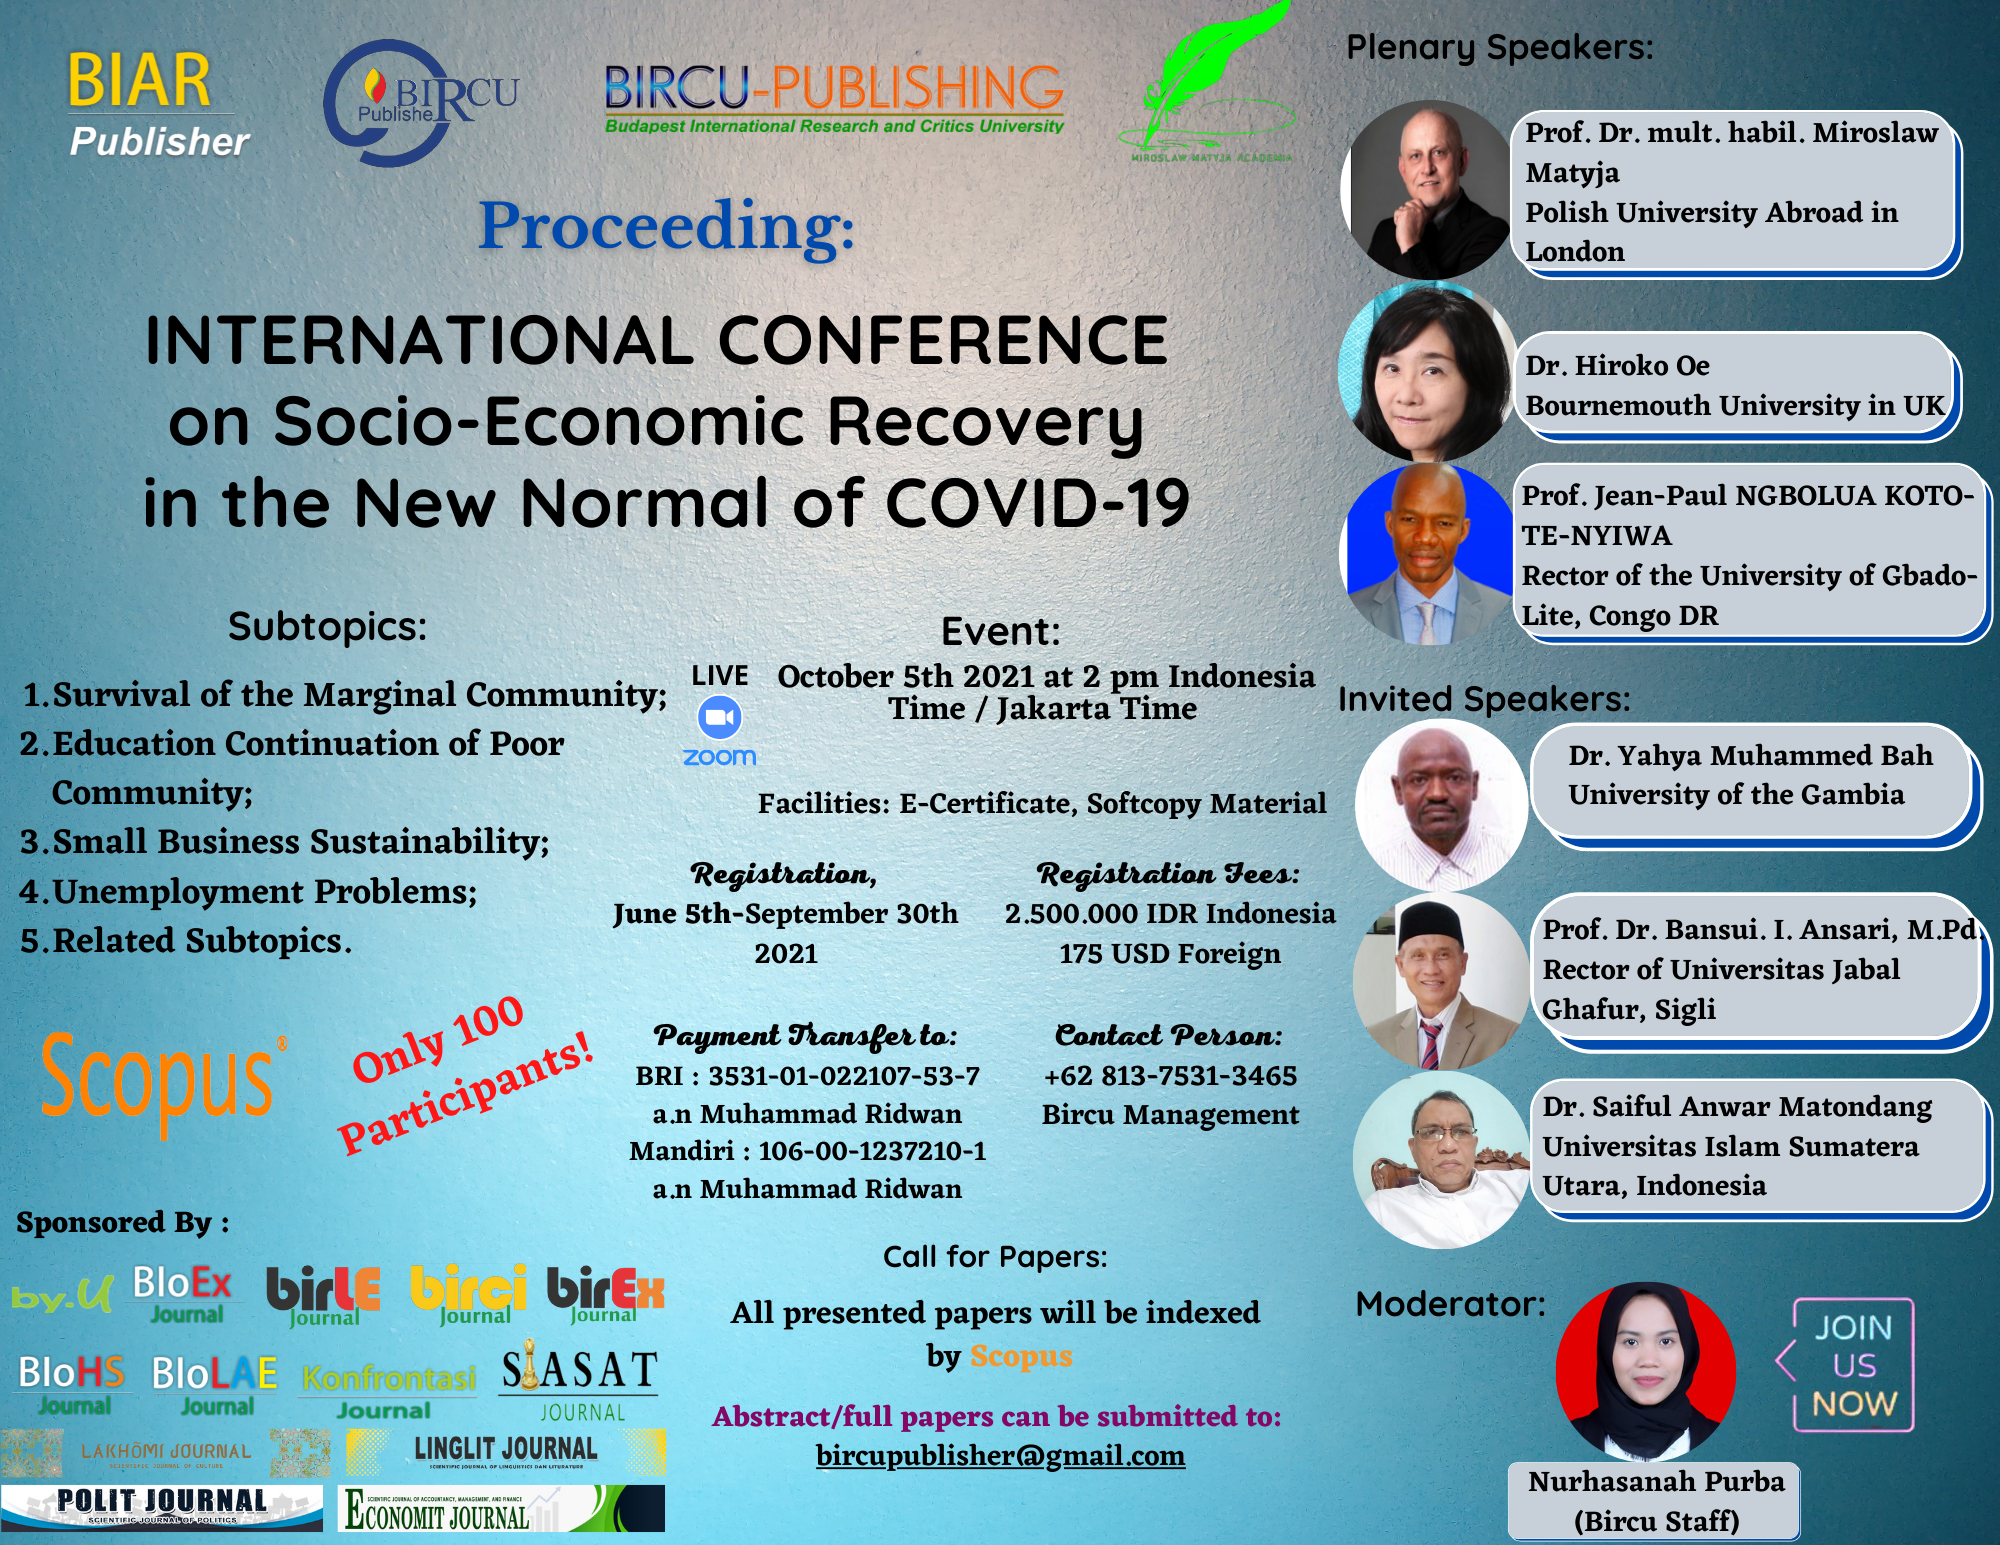 INTERNATIONAL CONFERENCE on Socio-Economic Recovery in the New Normal of COVID 19 (6)